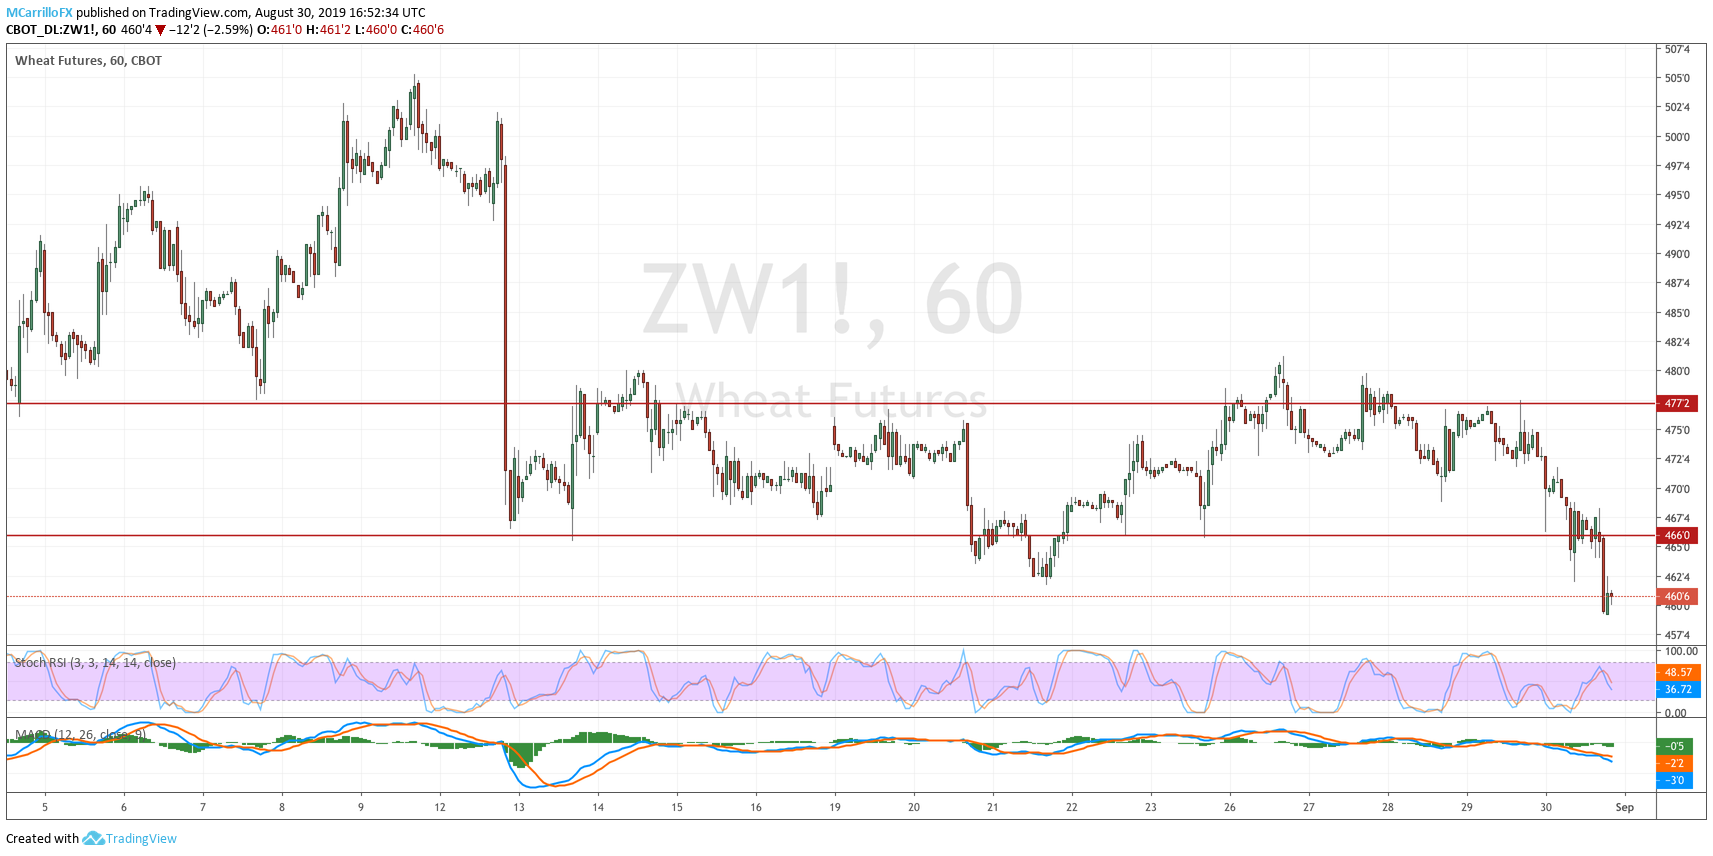 ZW1 Futures of Wheat 1-hour chart August 30